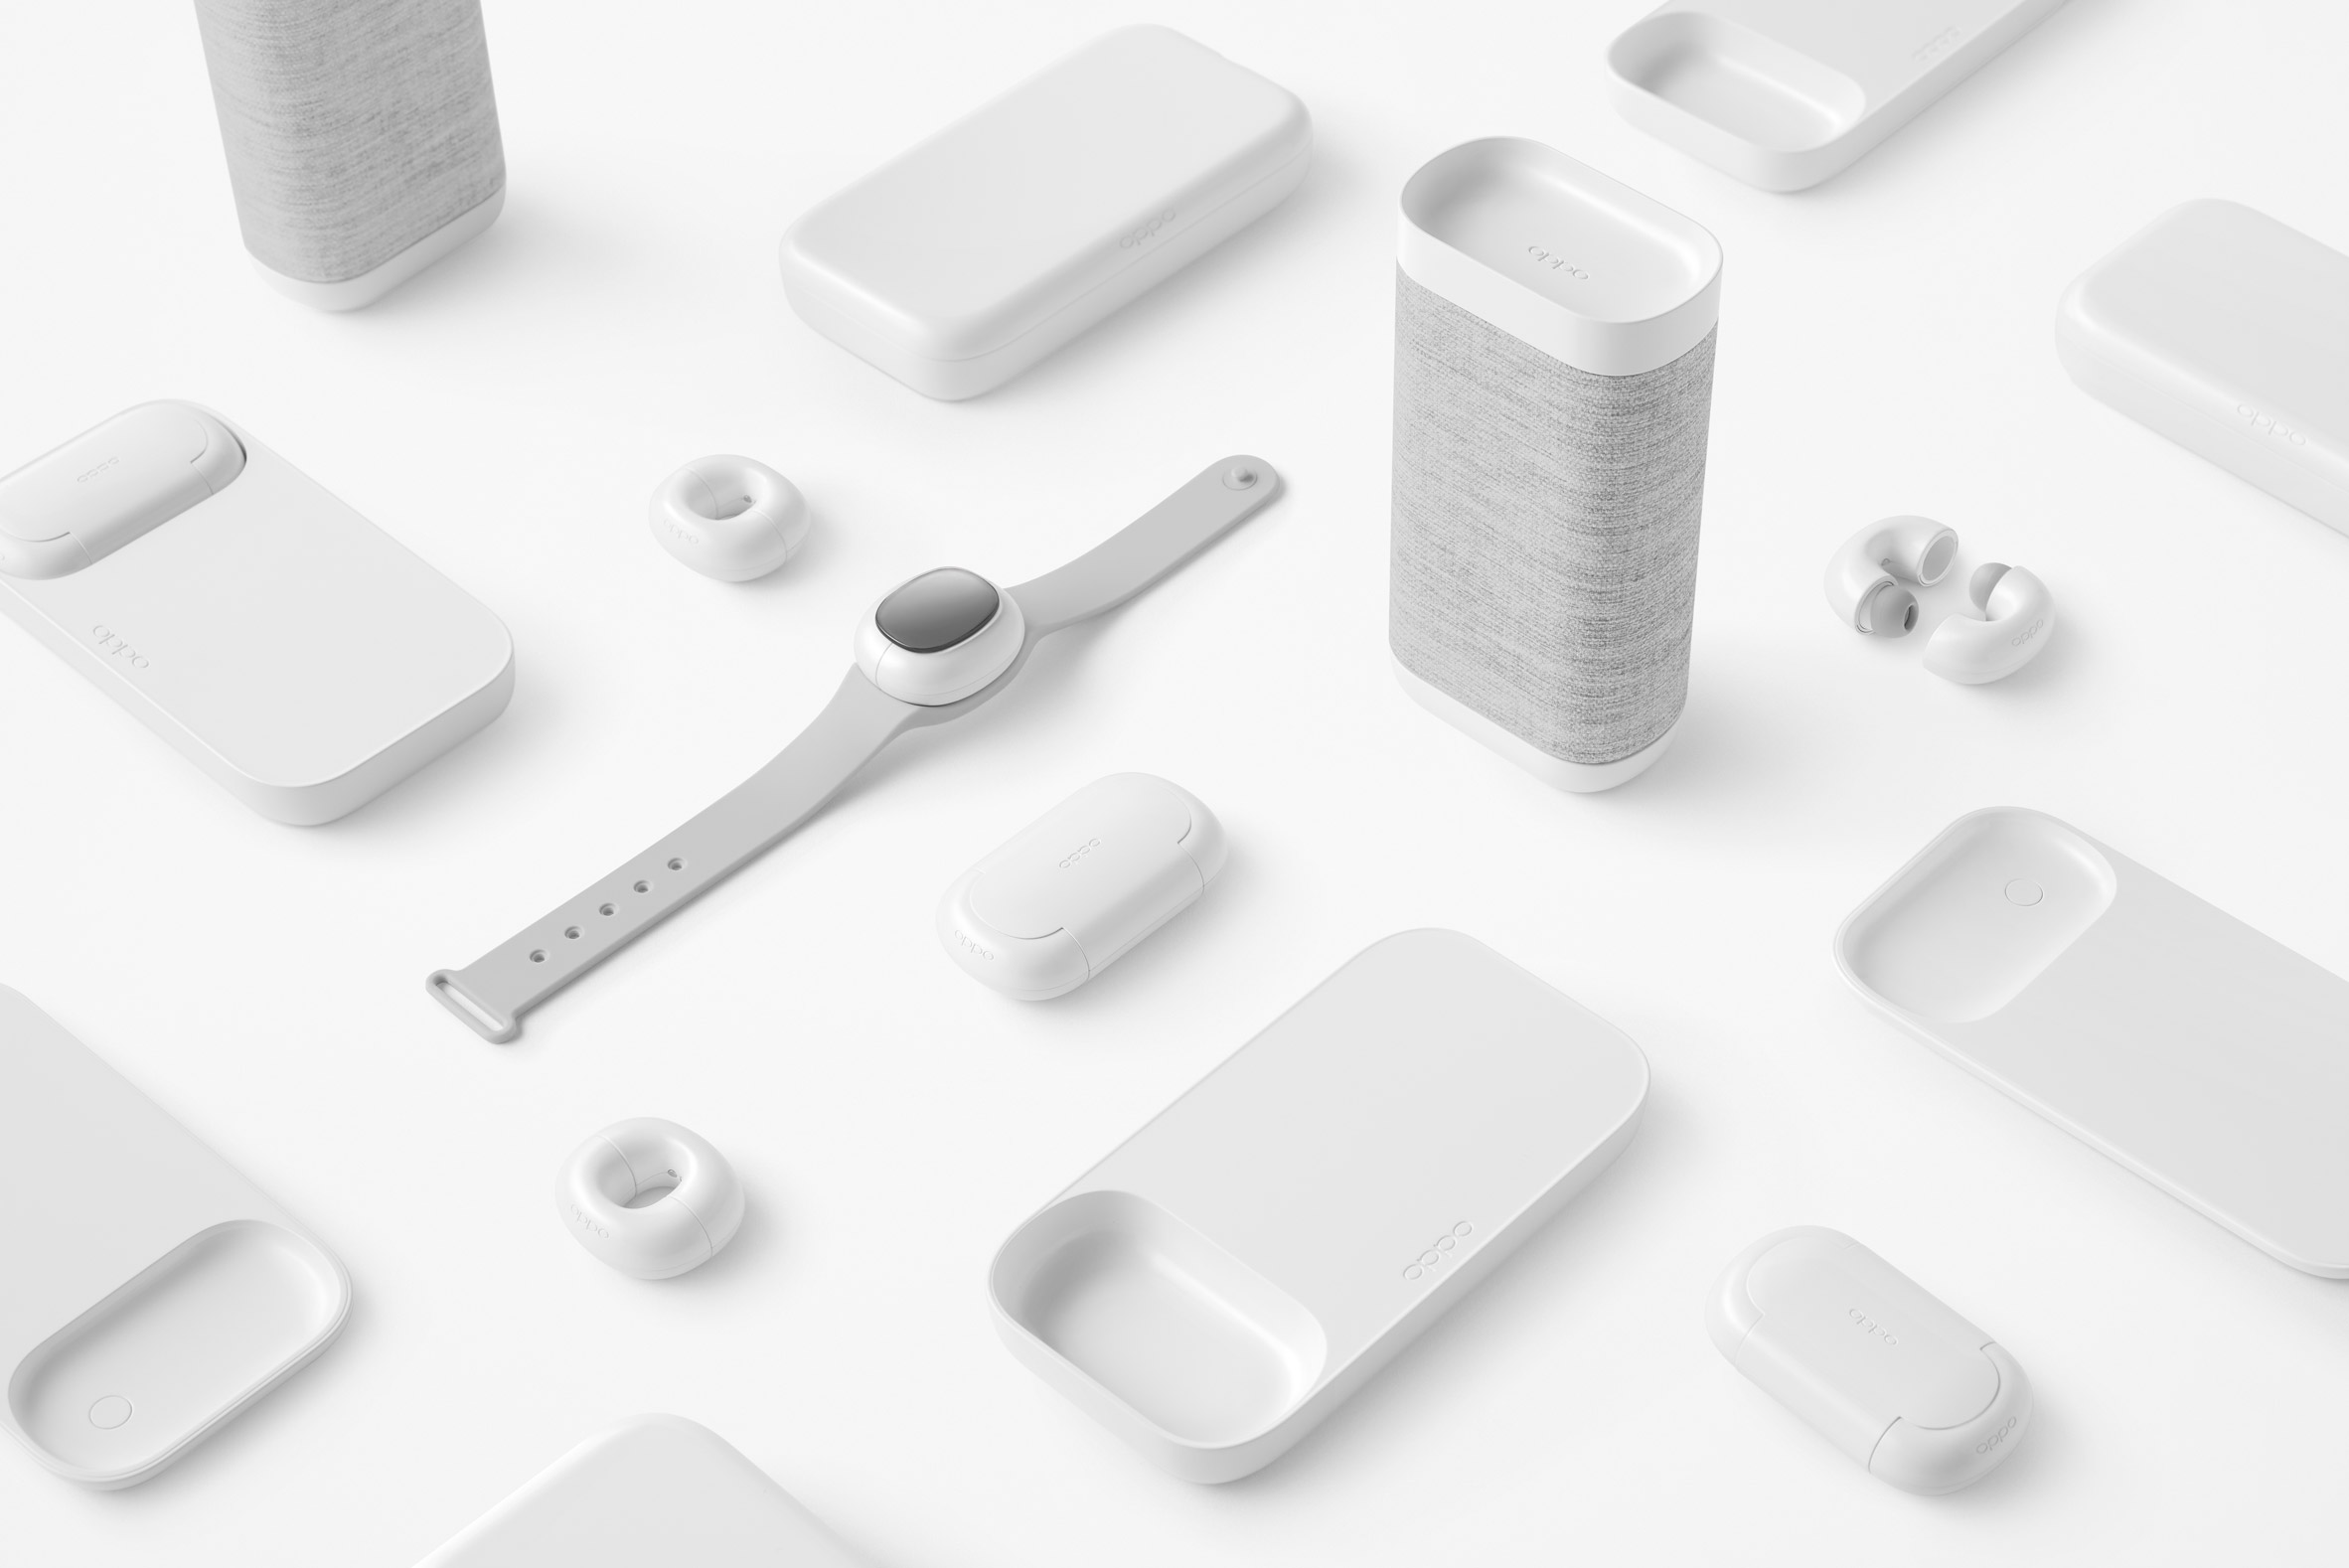 The Music-Link mobile accessory collection by Nendo for OPPO